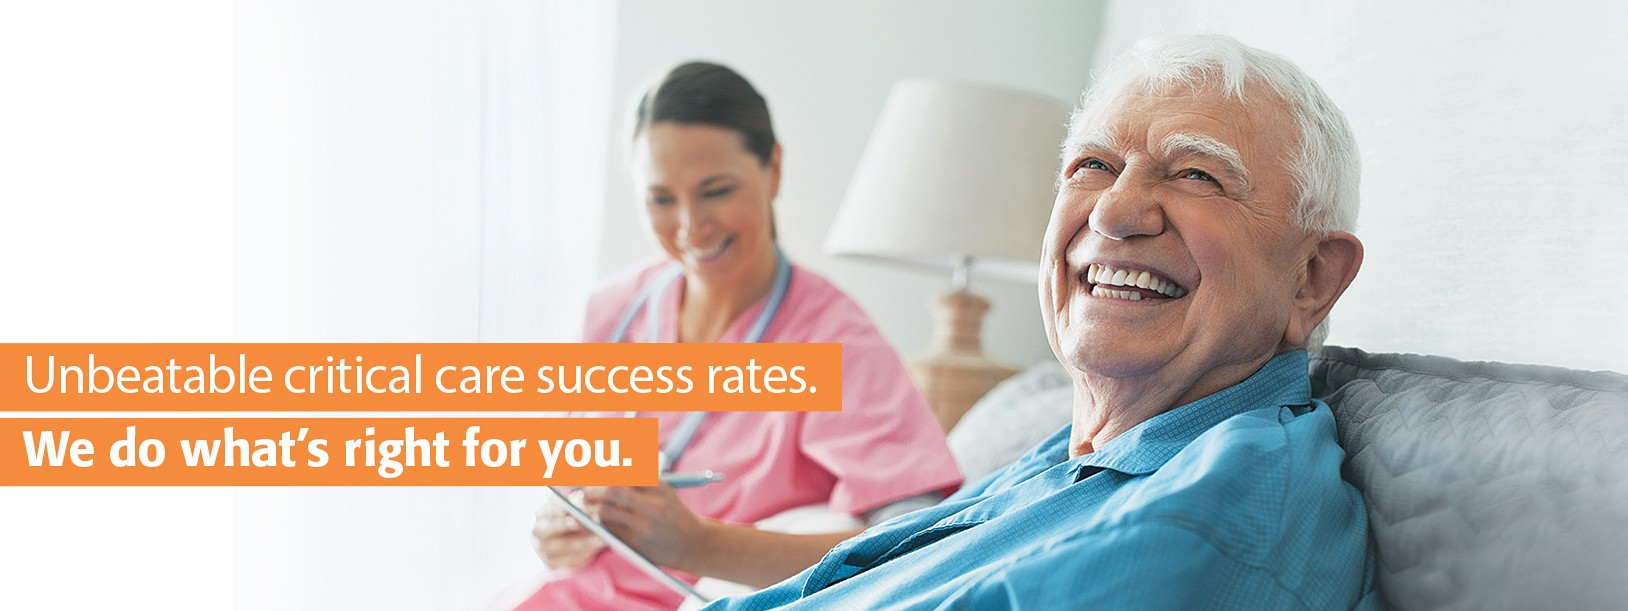 Unbeatable critical care success rates. We do what's right for you